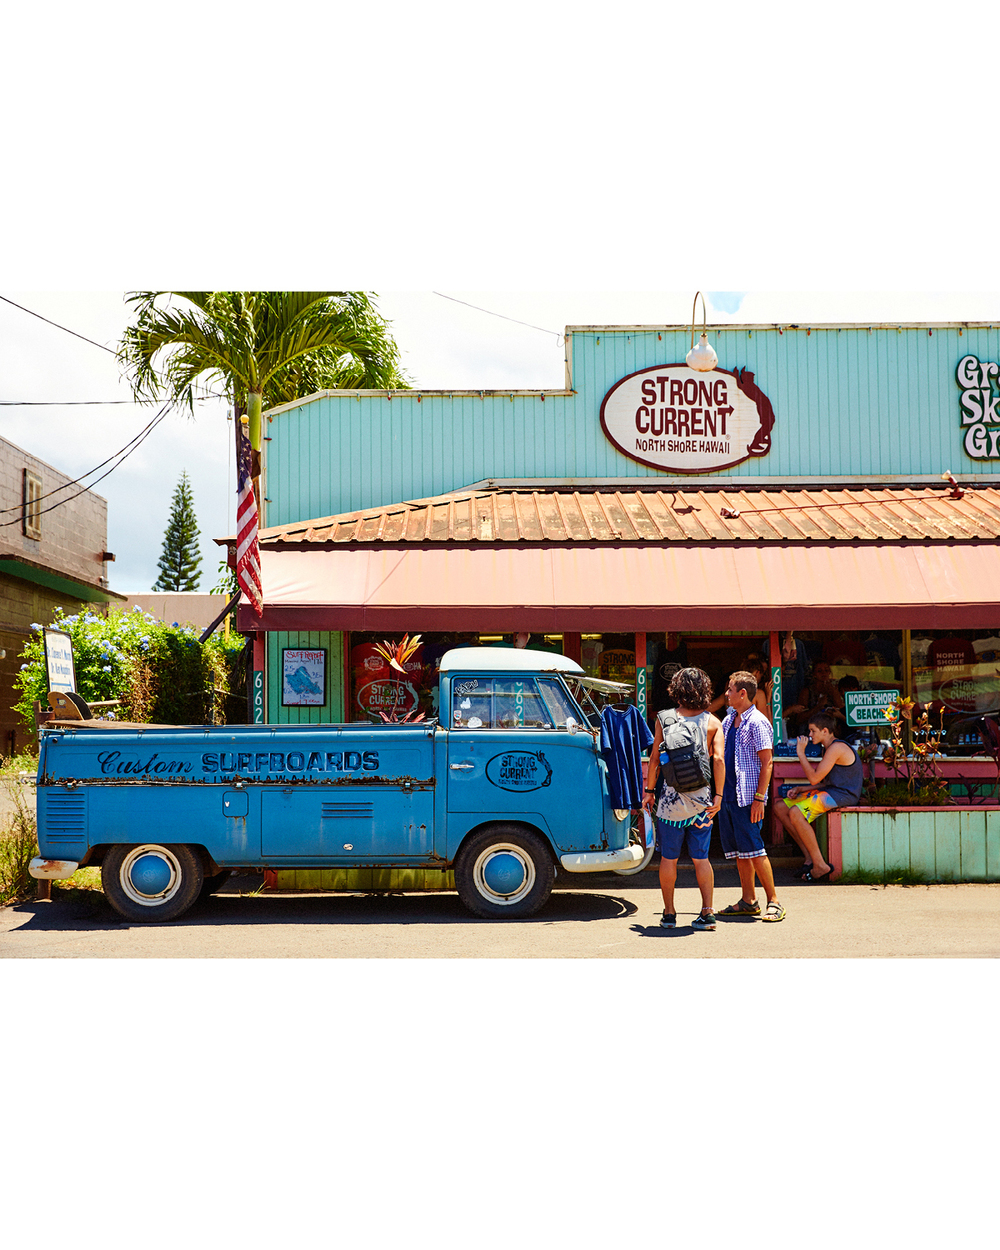 STRONG CURRENT SURF SHOP, HALE'IWA